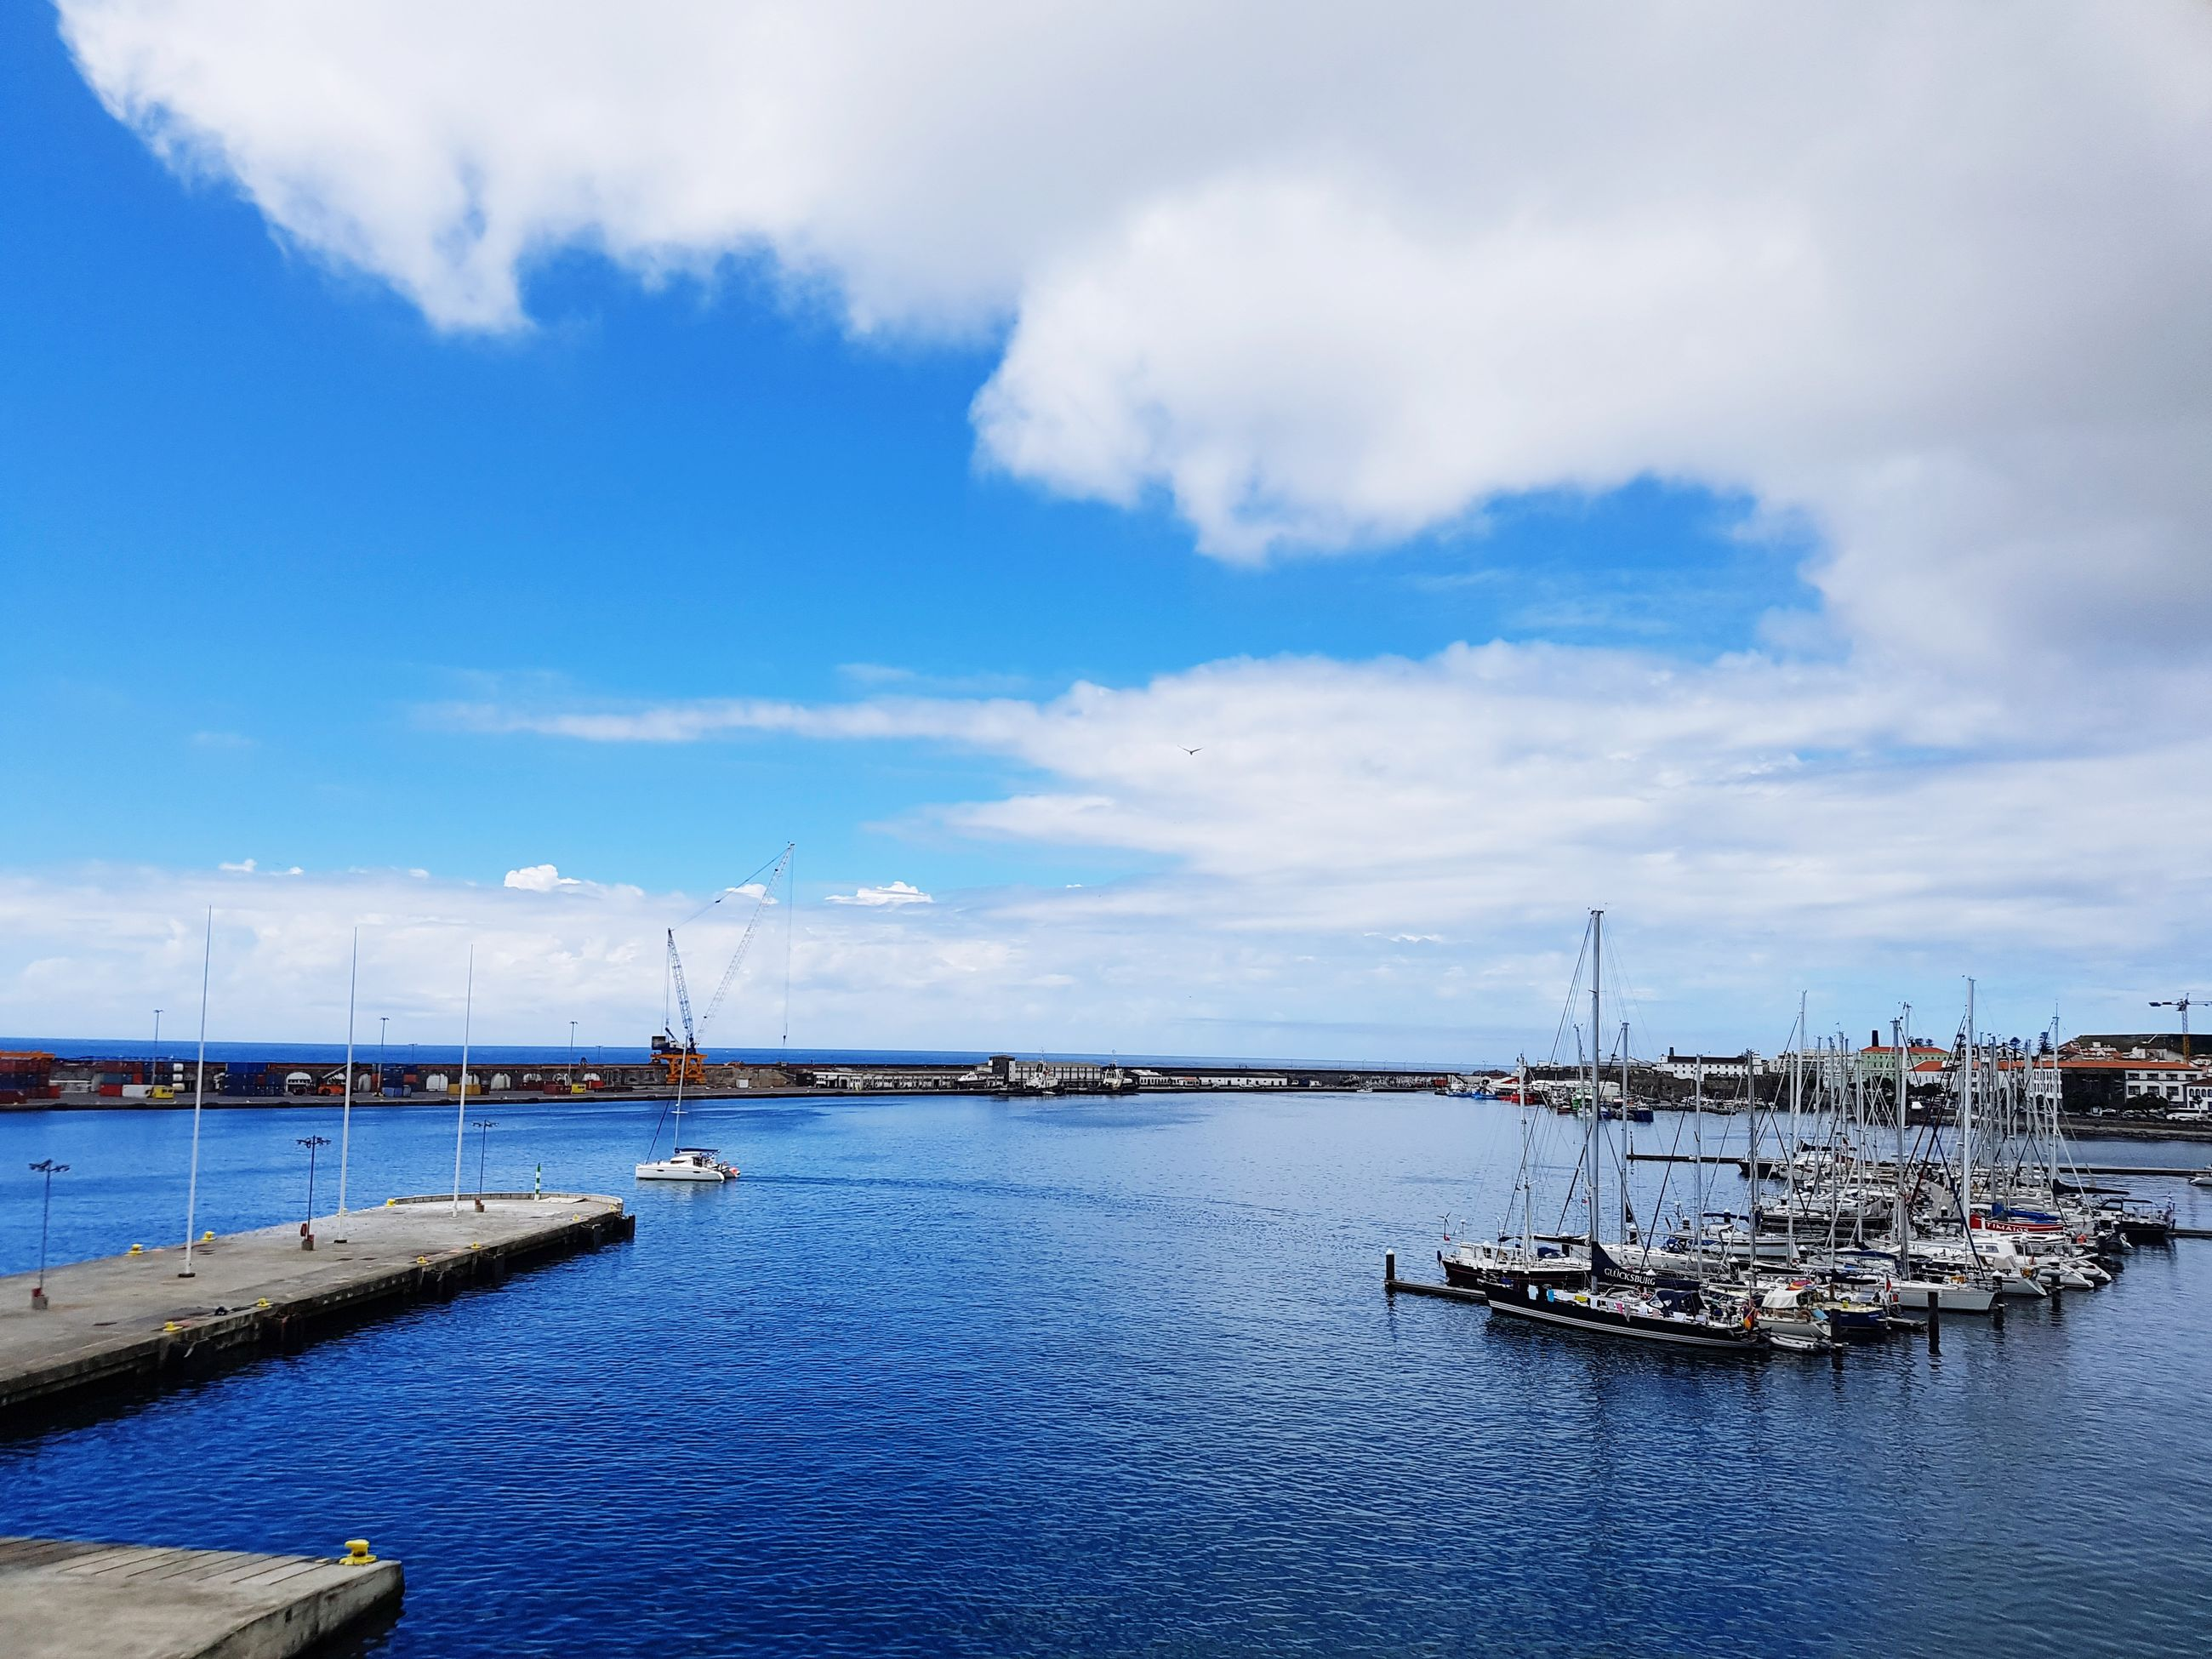 cloud - sky, water, sky, transportation, nautical vessel, no people, sea, outdoors, day, nature, mode of transport, bridge - man made structure, blue, architecture, harbor, built structure, travel destinations, scenics, beauty in nature, mast, wind power, wind turbine, windmill